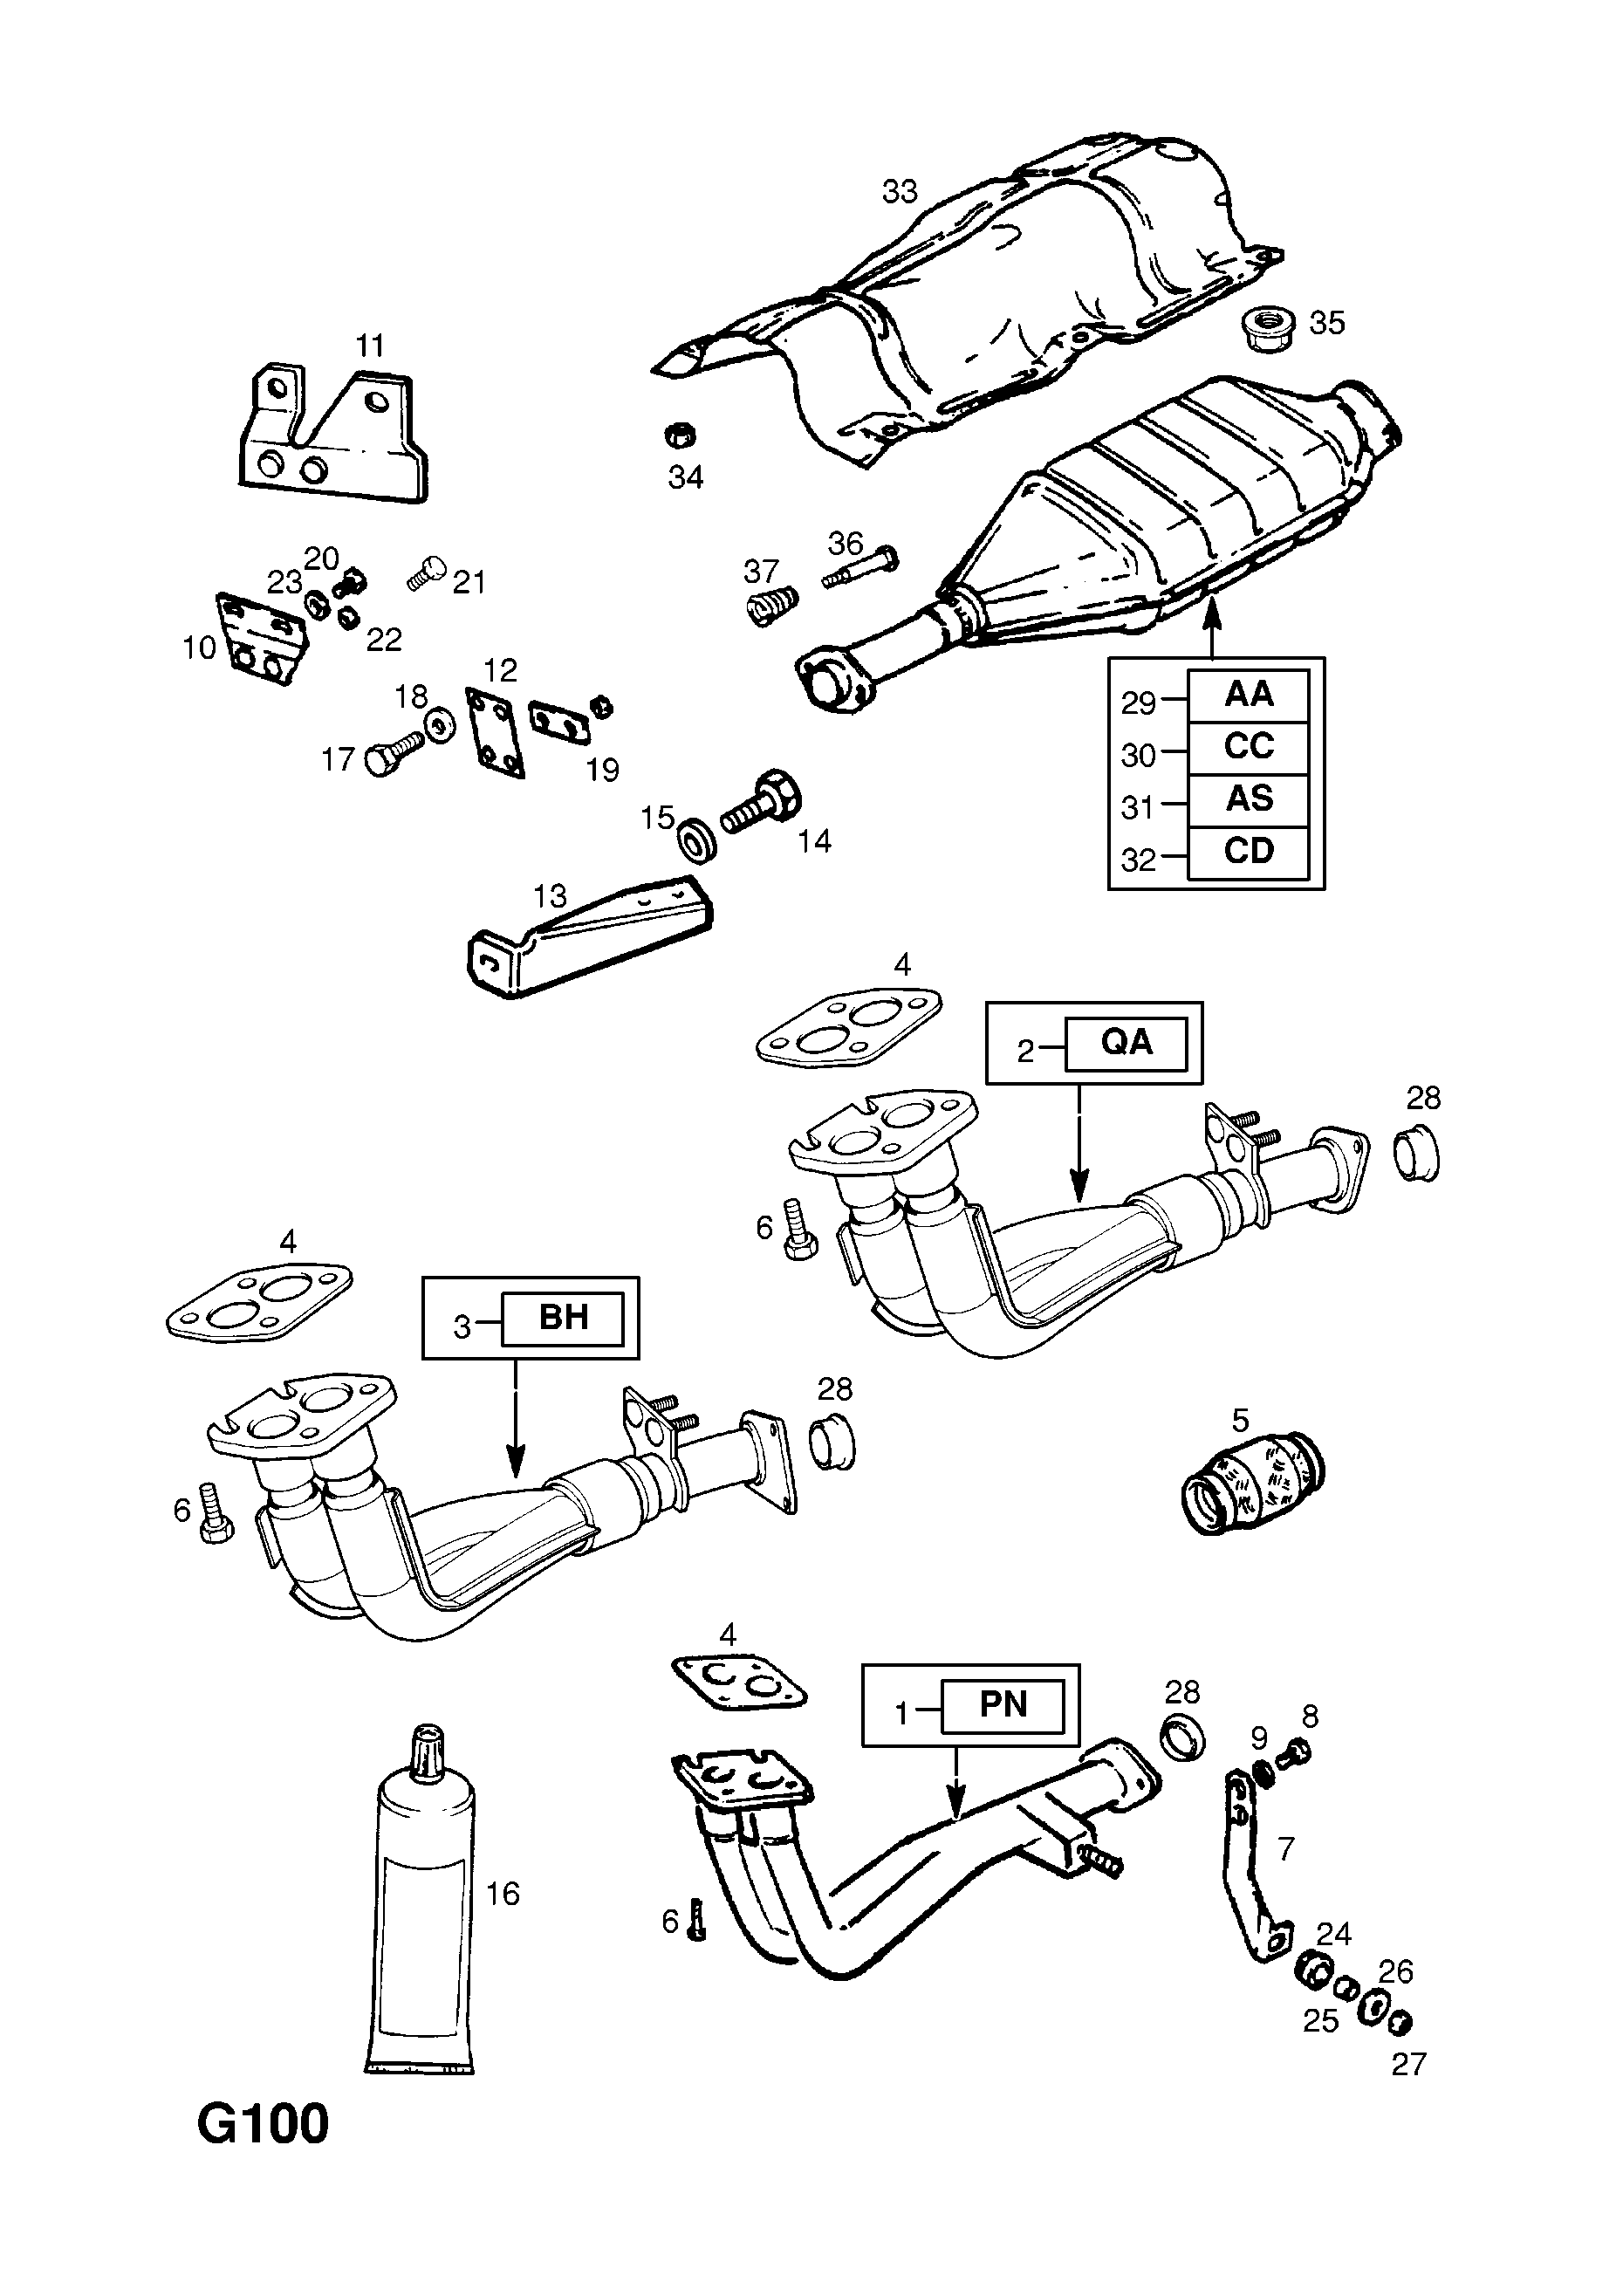 EXHAUST PIPE,SILENCER AND CATALYTIC CONVERTER (CONTD